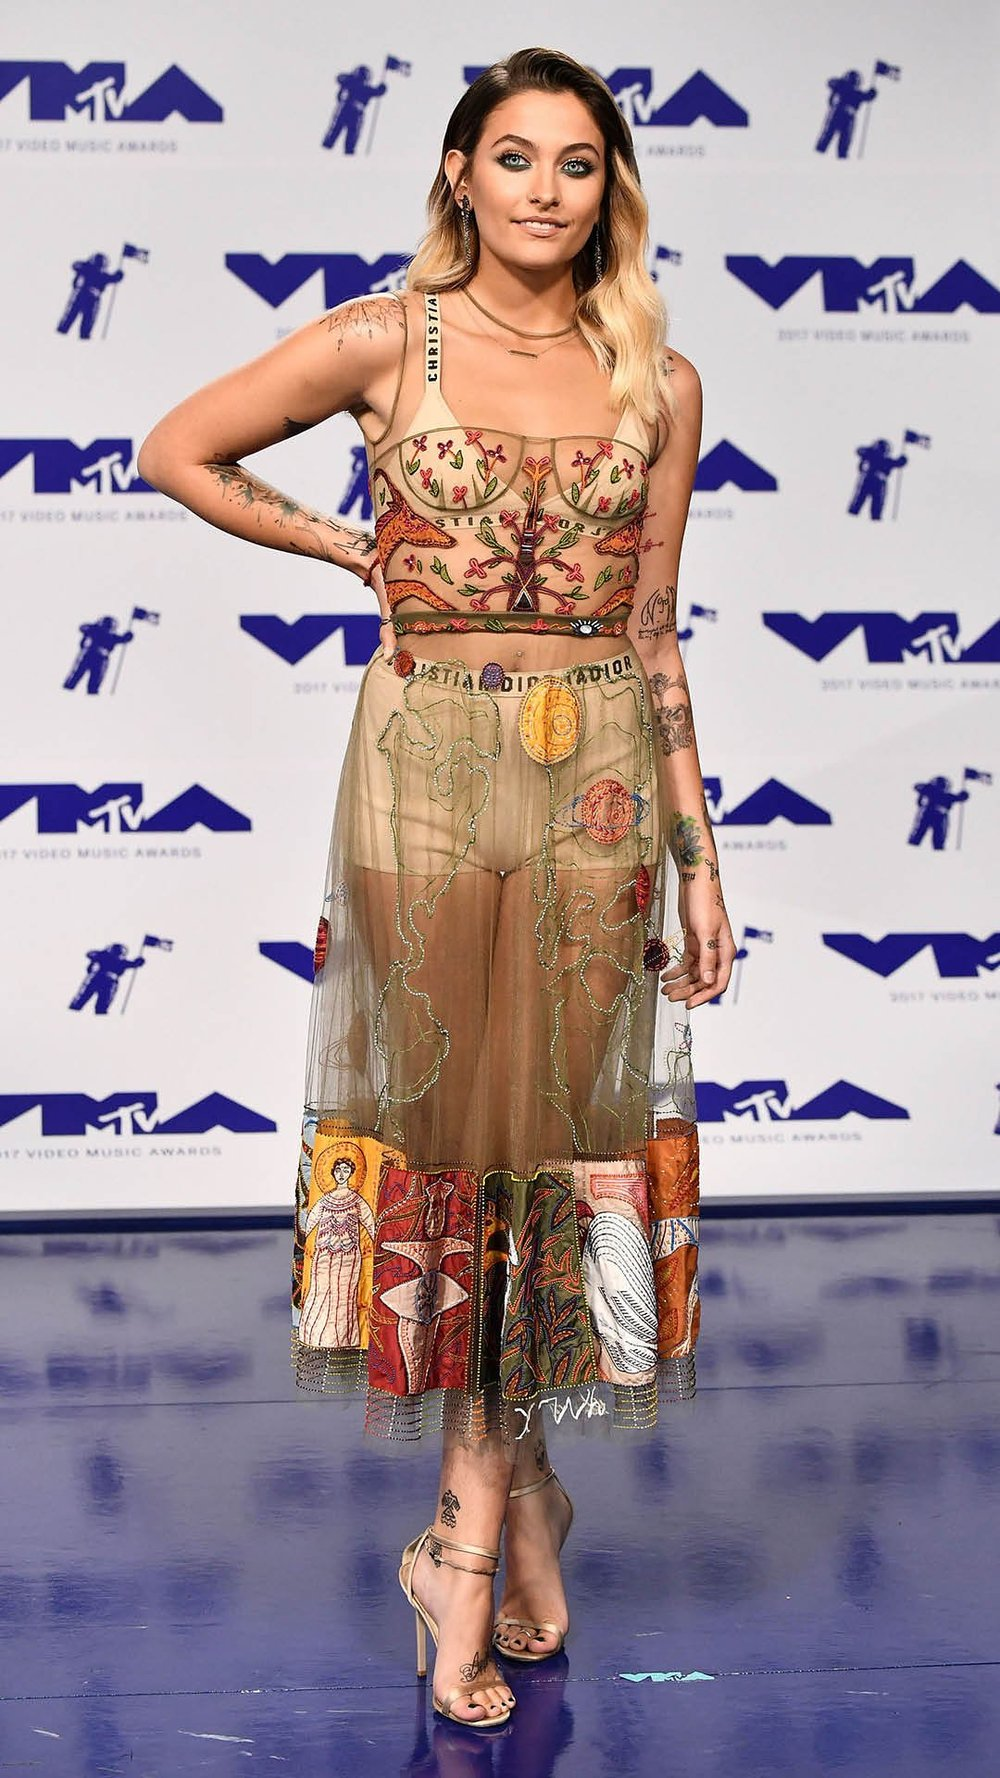 mtv-vmas-2017-best-dressed2.jpg